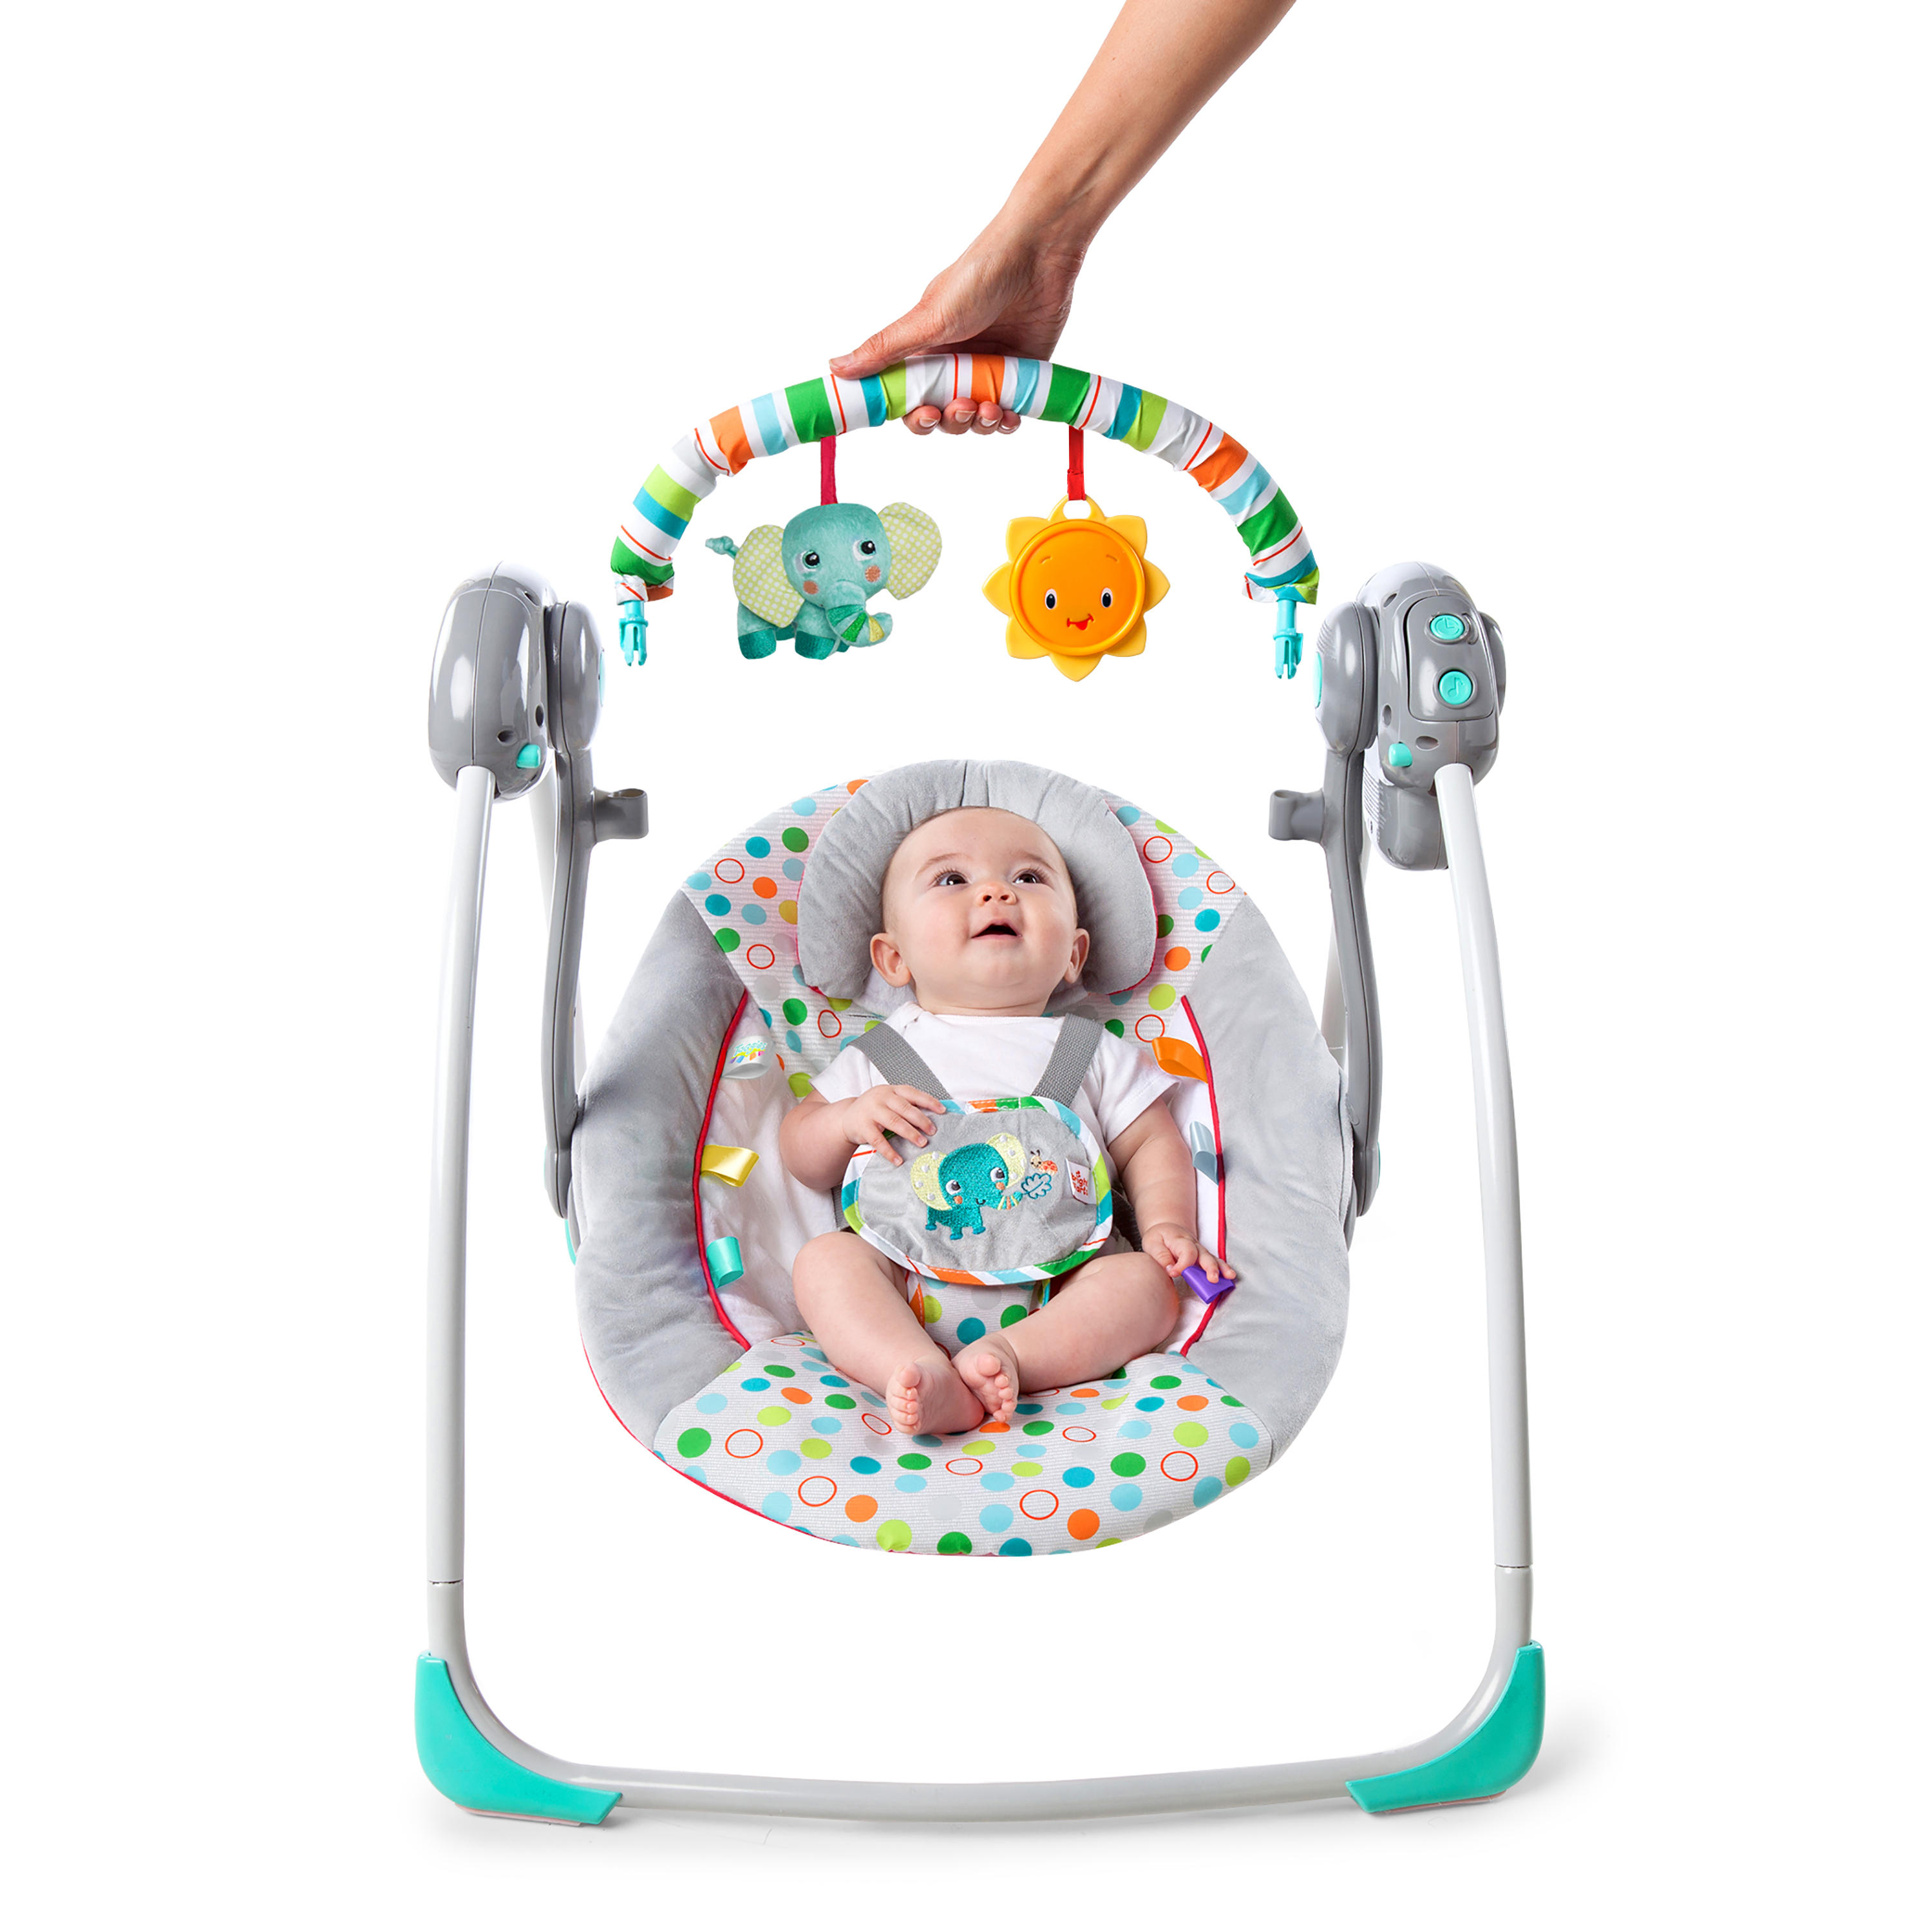 Itsy Bitsy Jungle™ Portable Swing